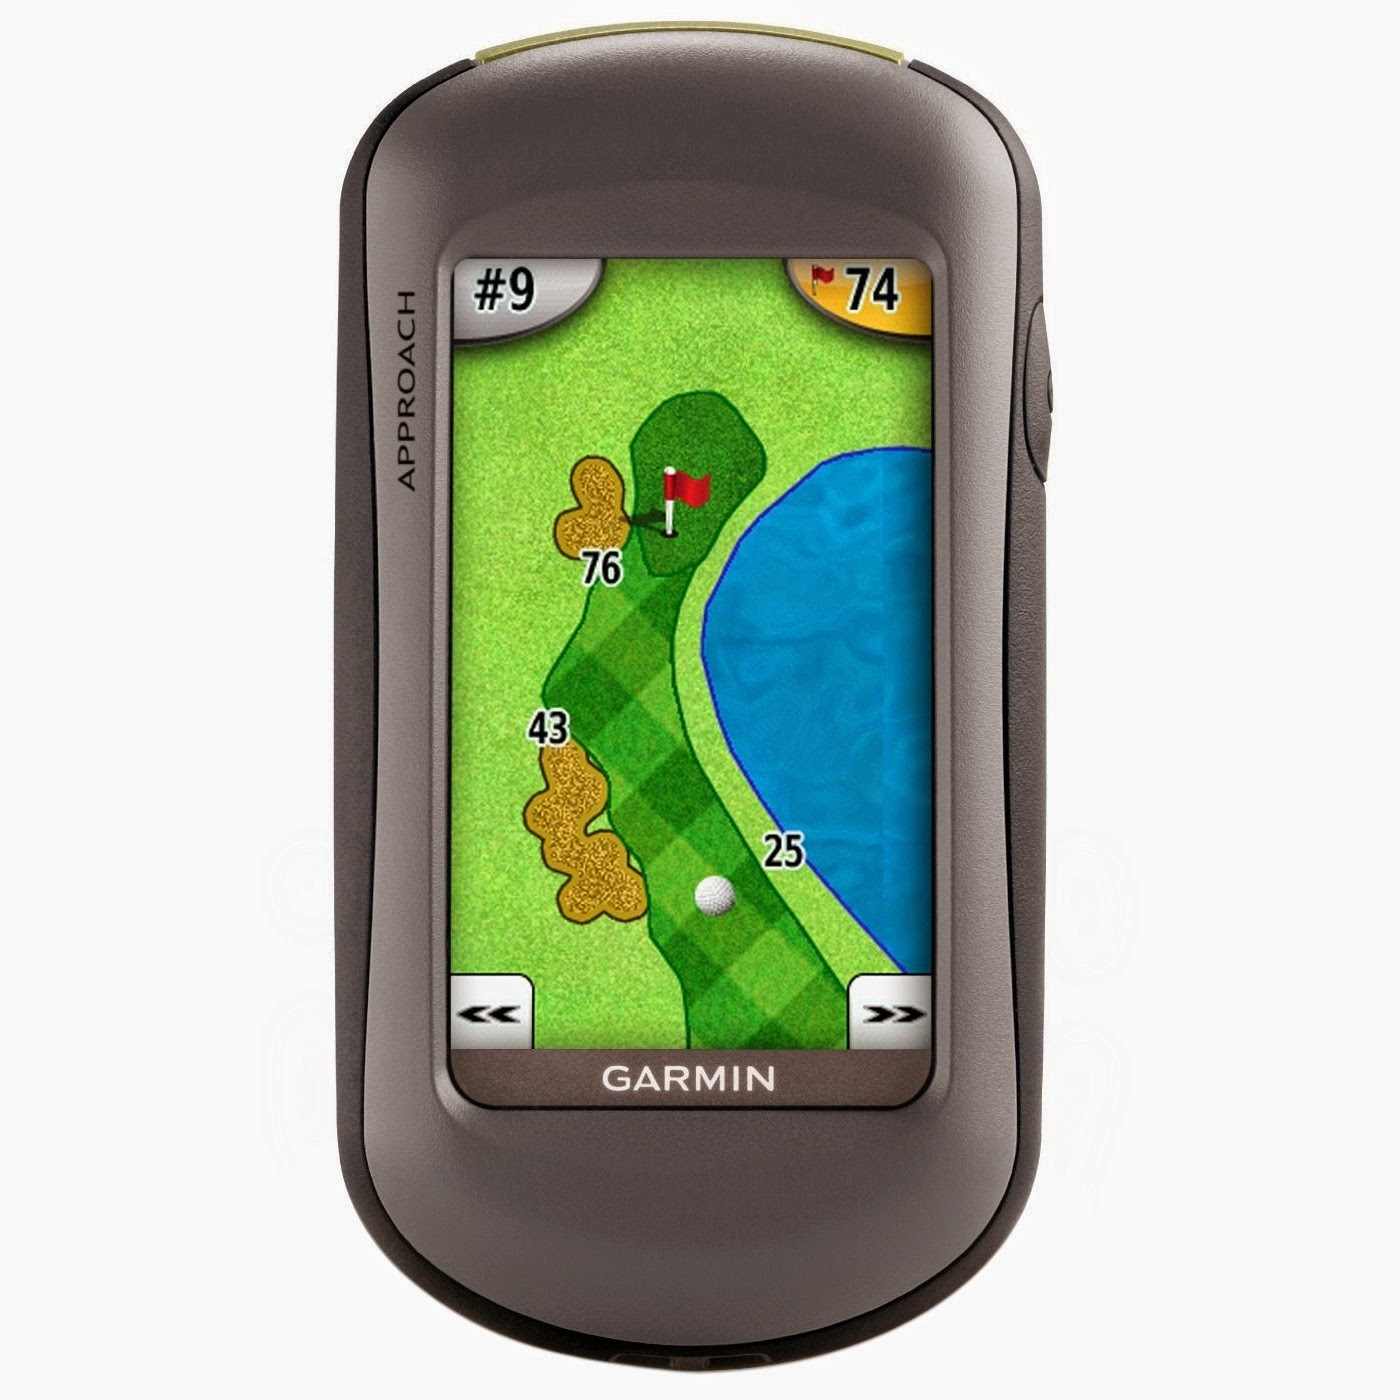 Garmin Approach G5 Waterproof Touchscreen Golf GPS, picture, image, review features and specifications